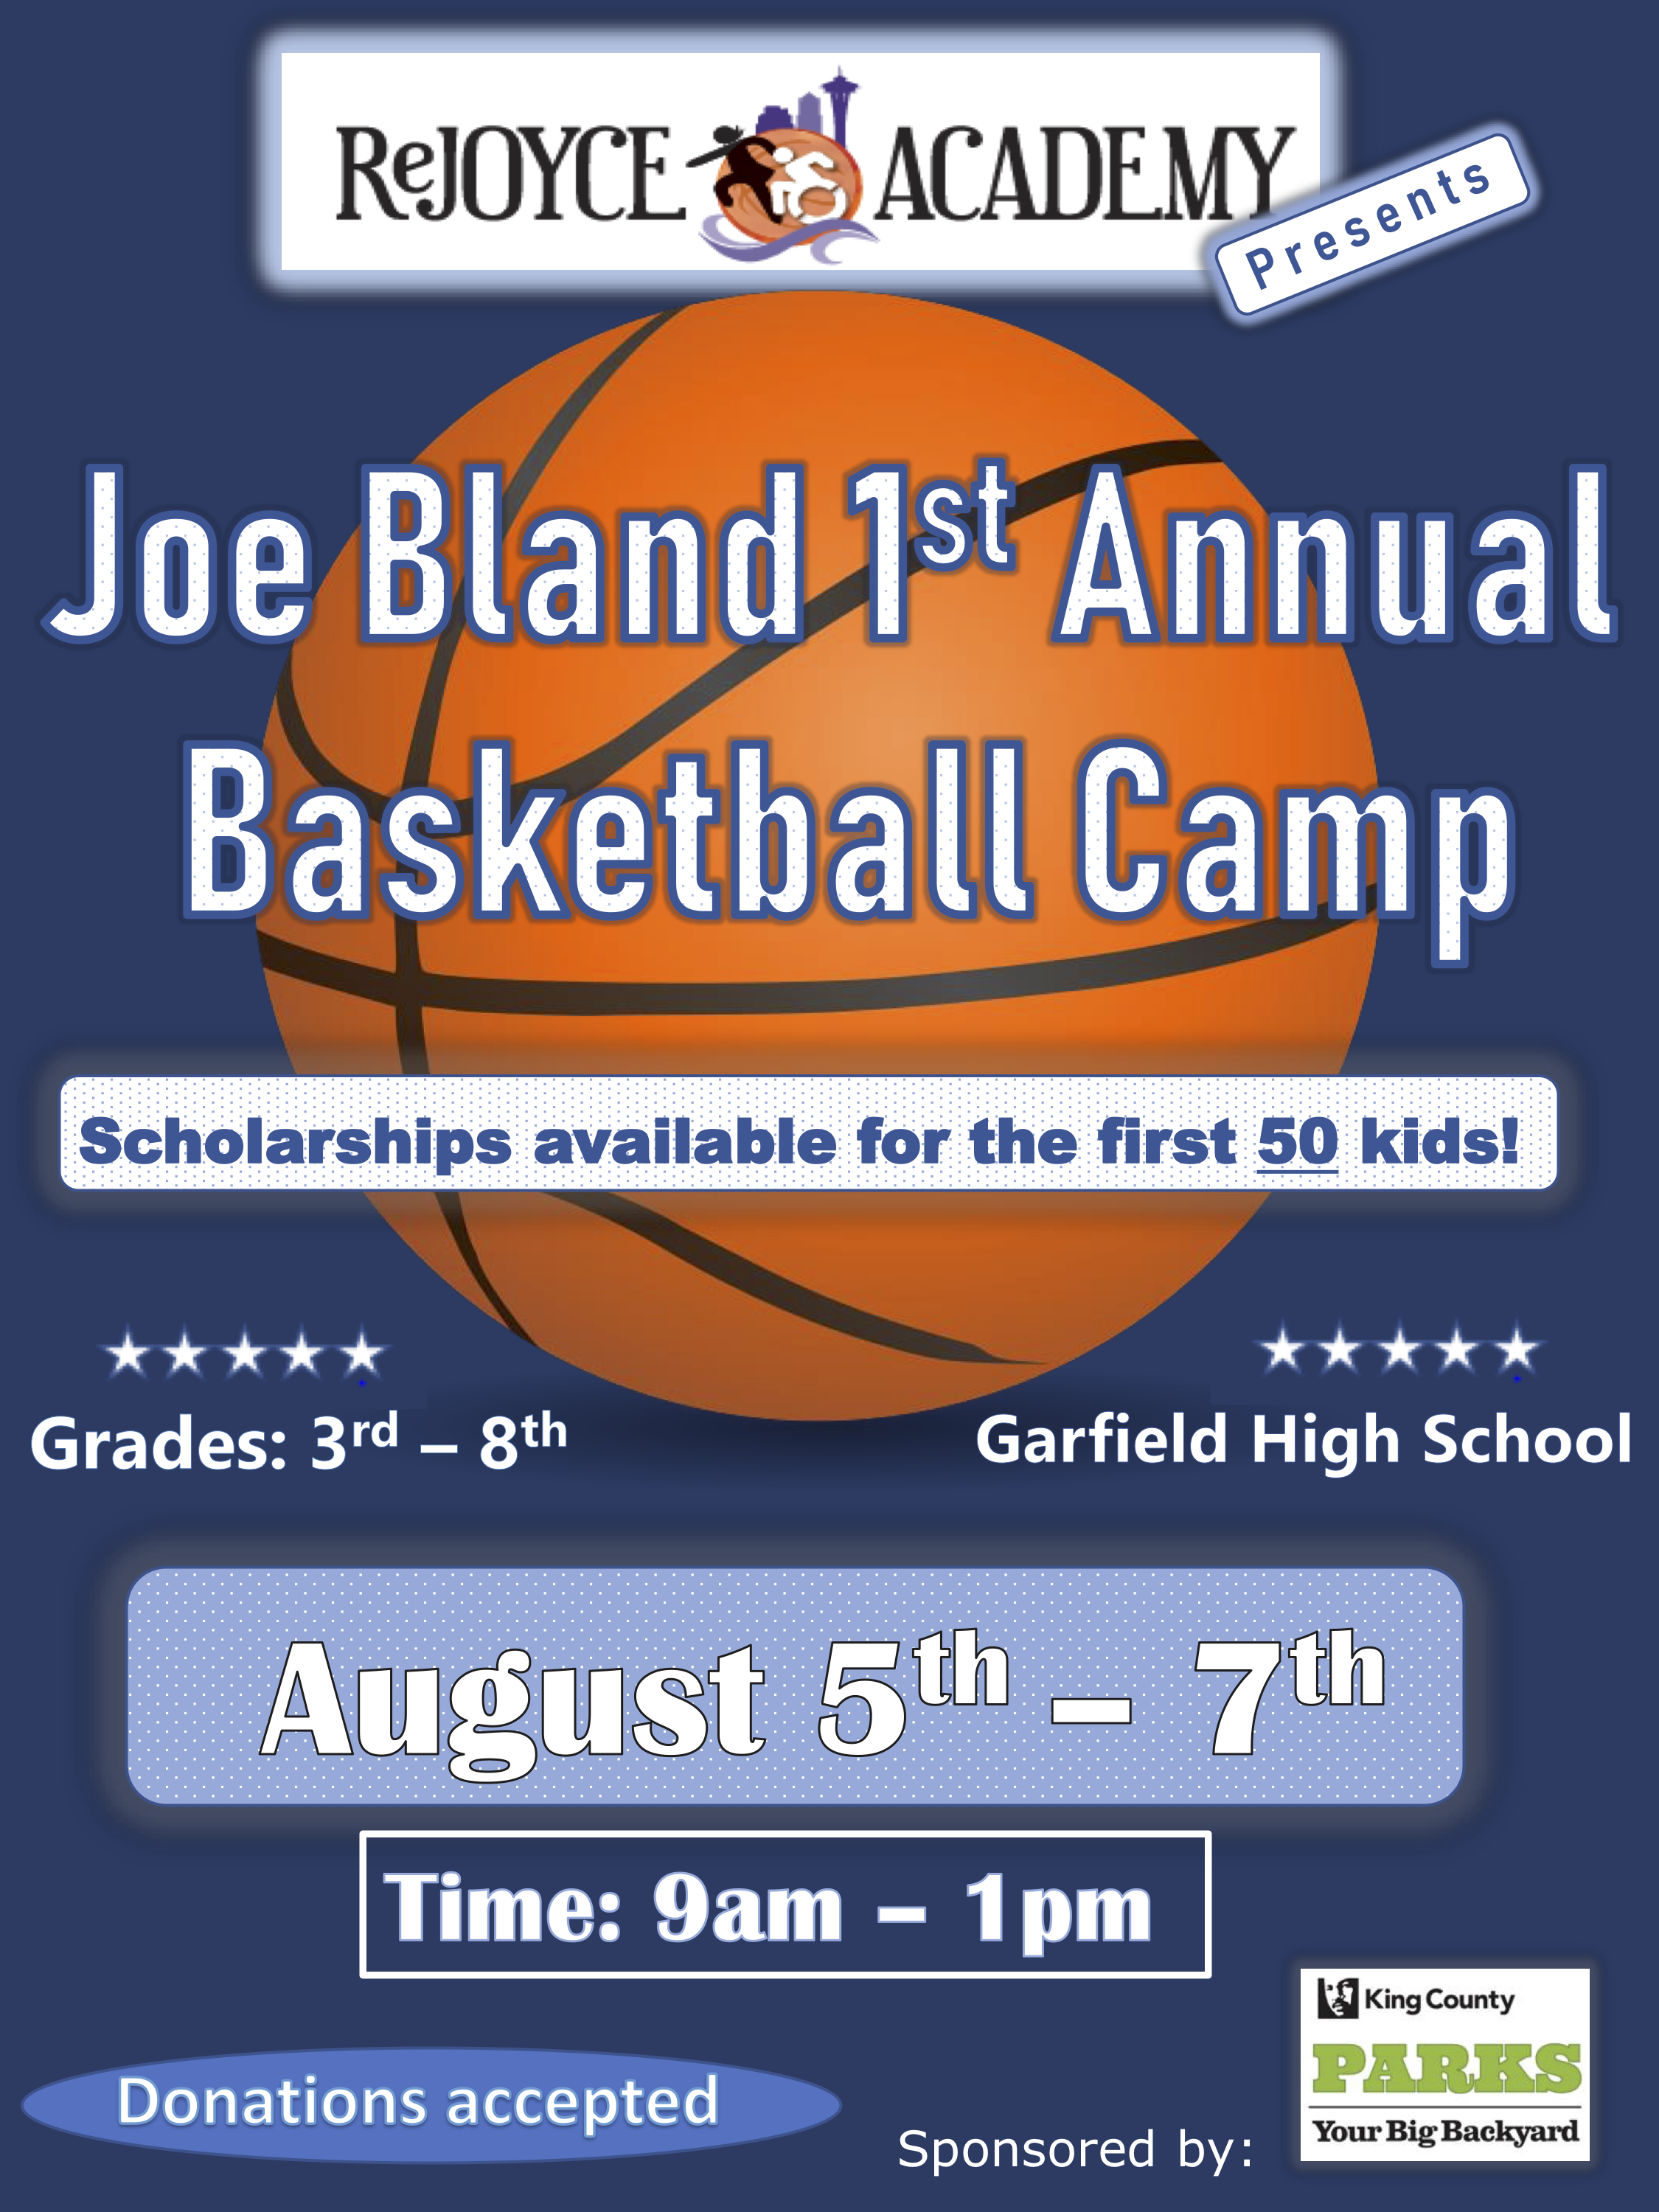 Joe Bland 1st Annual Basketball Camp Flyer.png